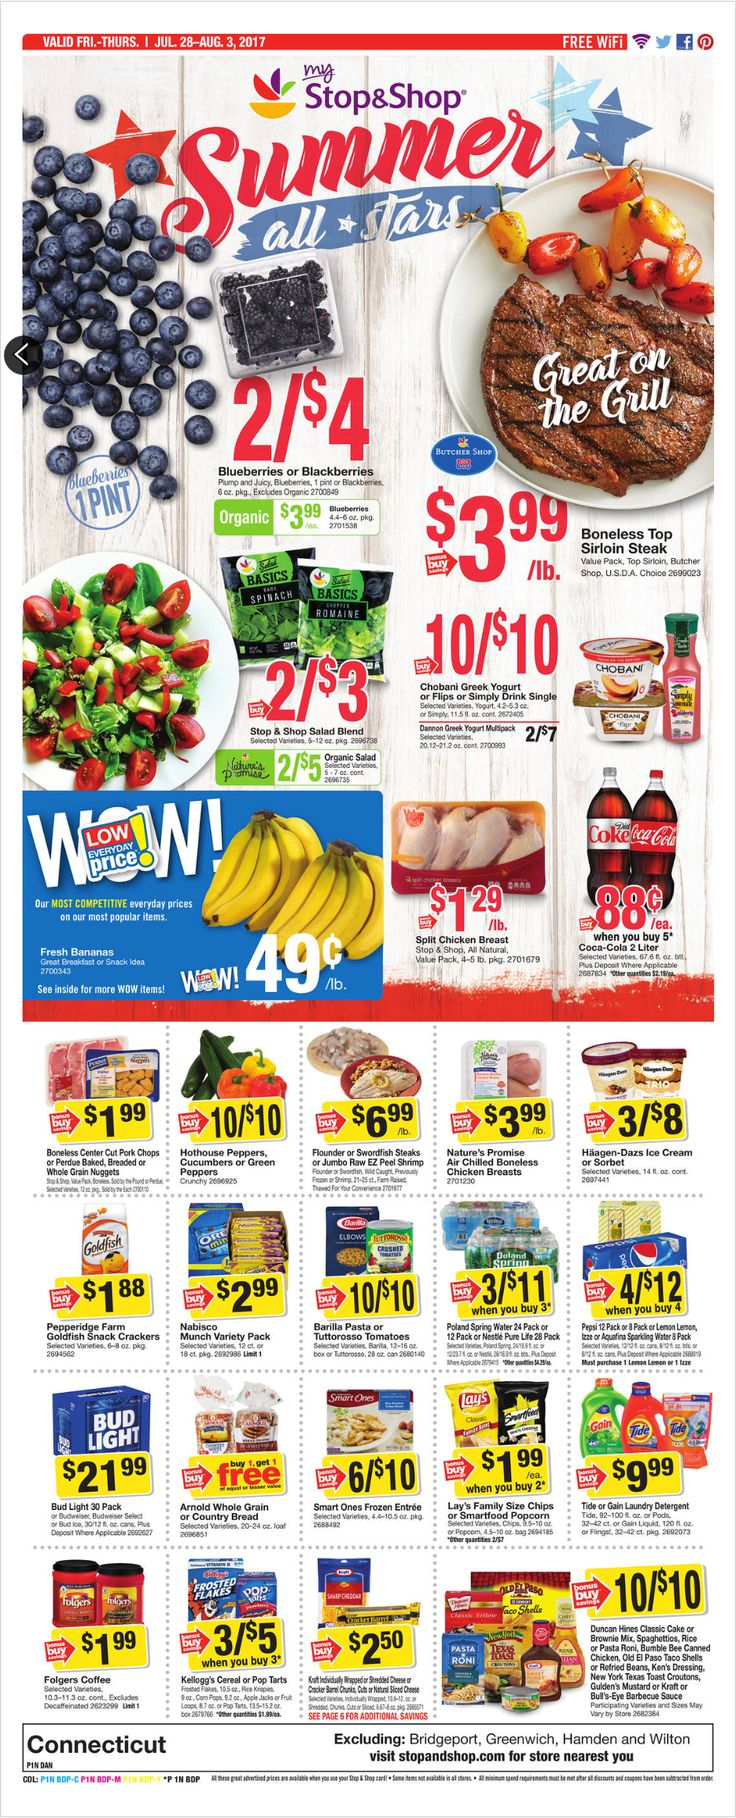 Stop and Shop Circular July 28 - August 3, 2017 - http://www.olcatalog.com/grocery/stop-and-shop-circular.html